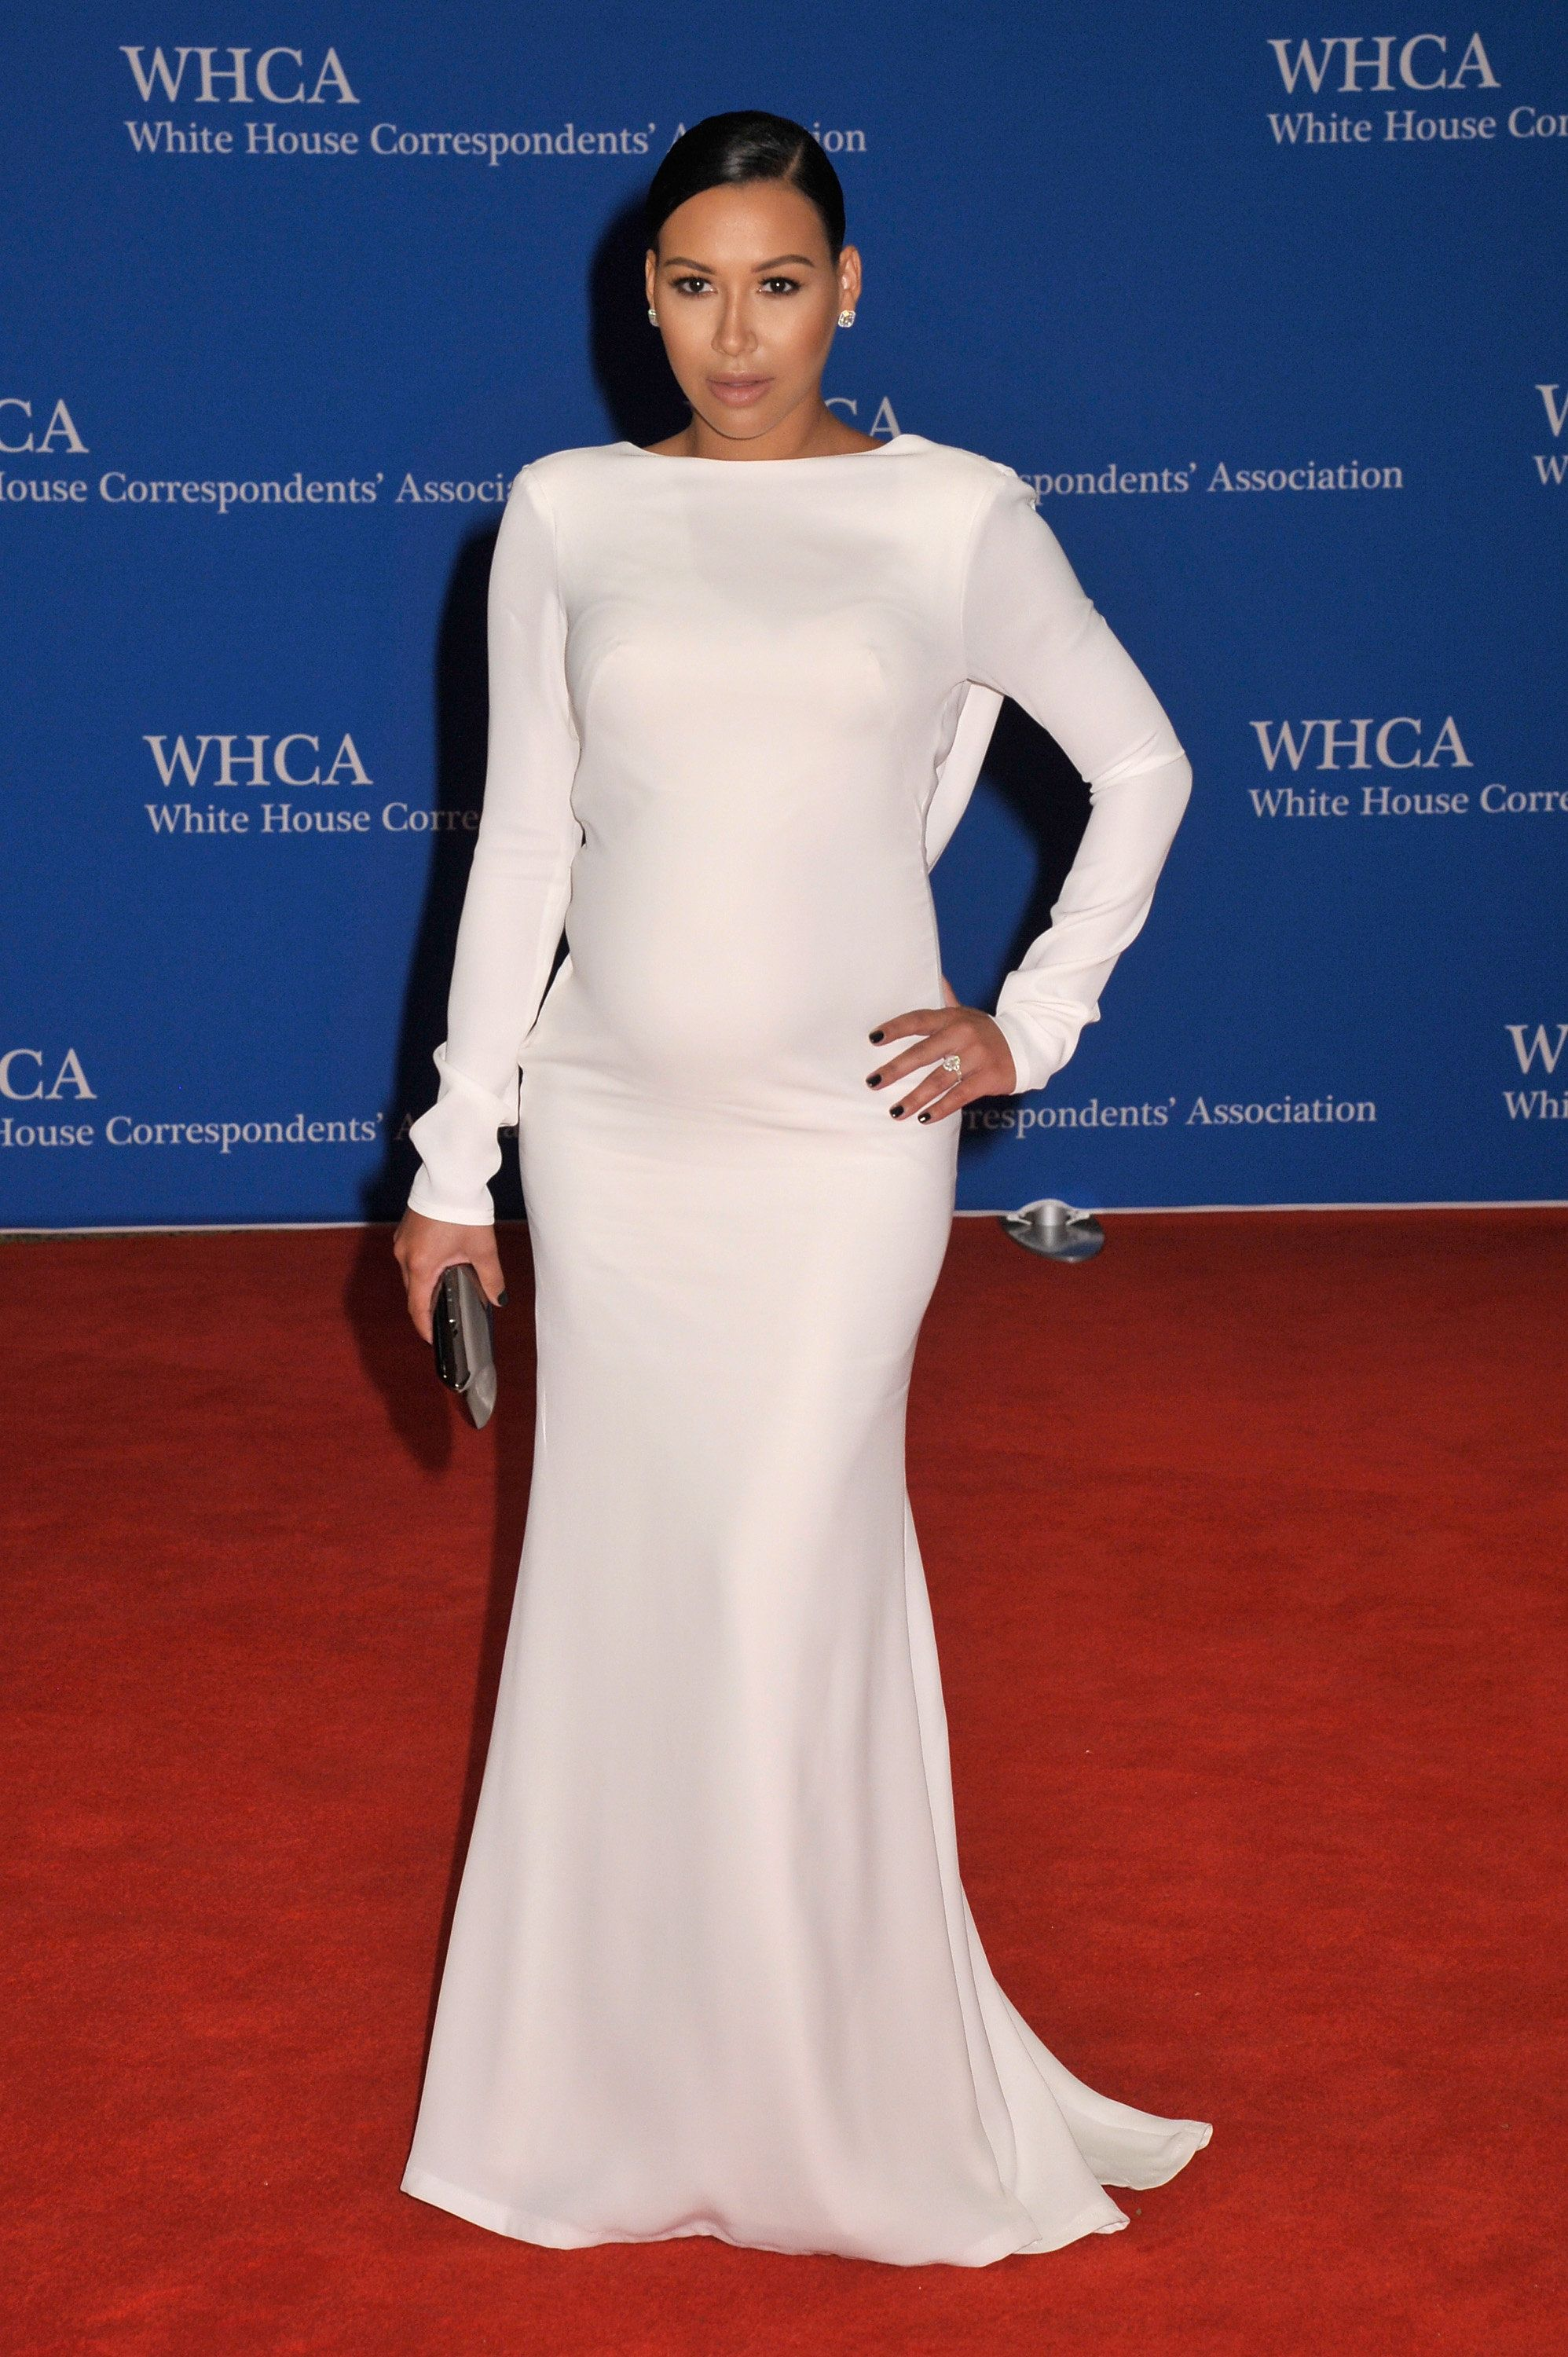 WASHINGTON, DC - APRIL 25:  Naya Rivera attends the 101st Annual White House Correspondents' Association Dinner at the Washington Hilton on April 25, 2015 in Washington, DC.  (Photo by Kris Connor/FilmMagic)